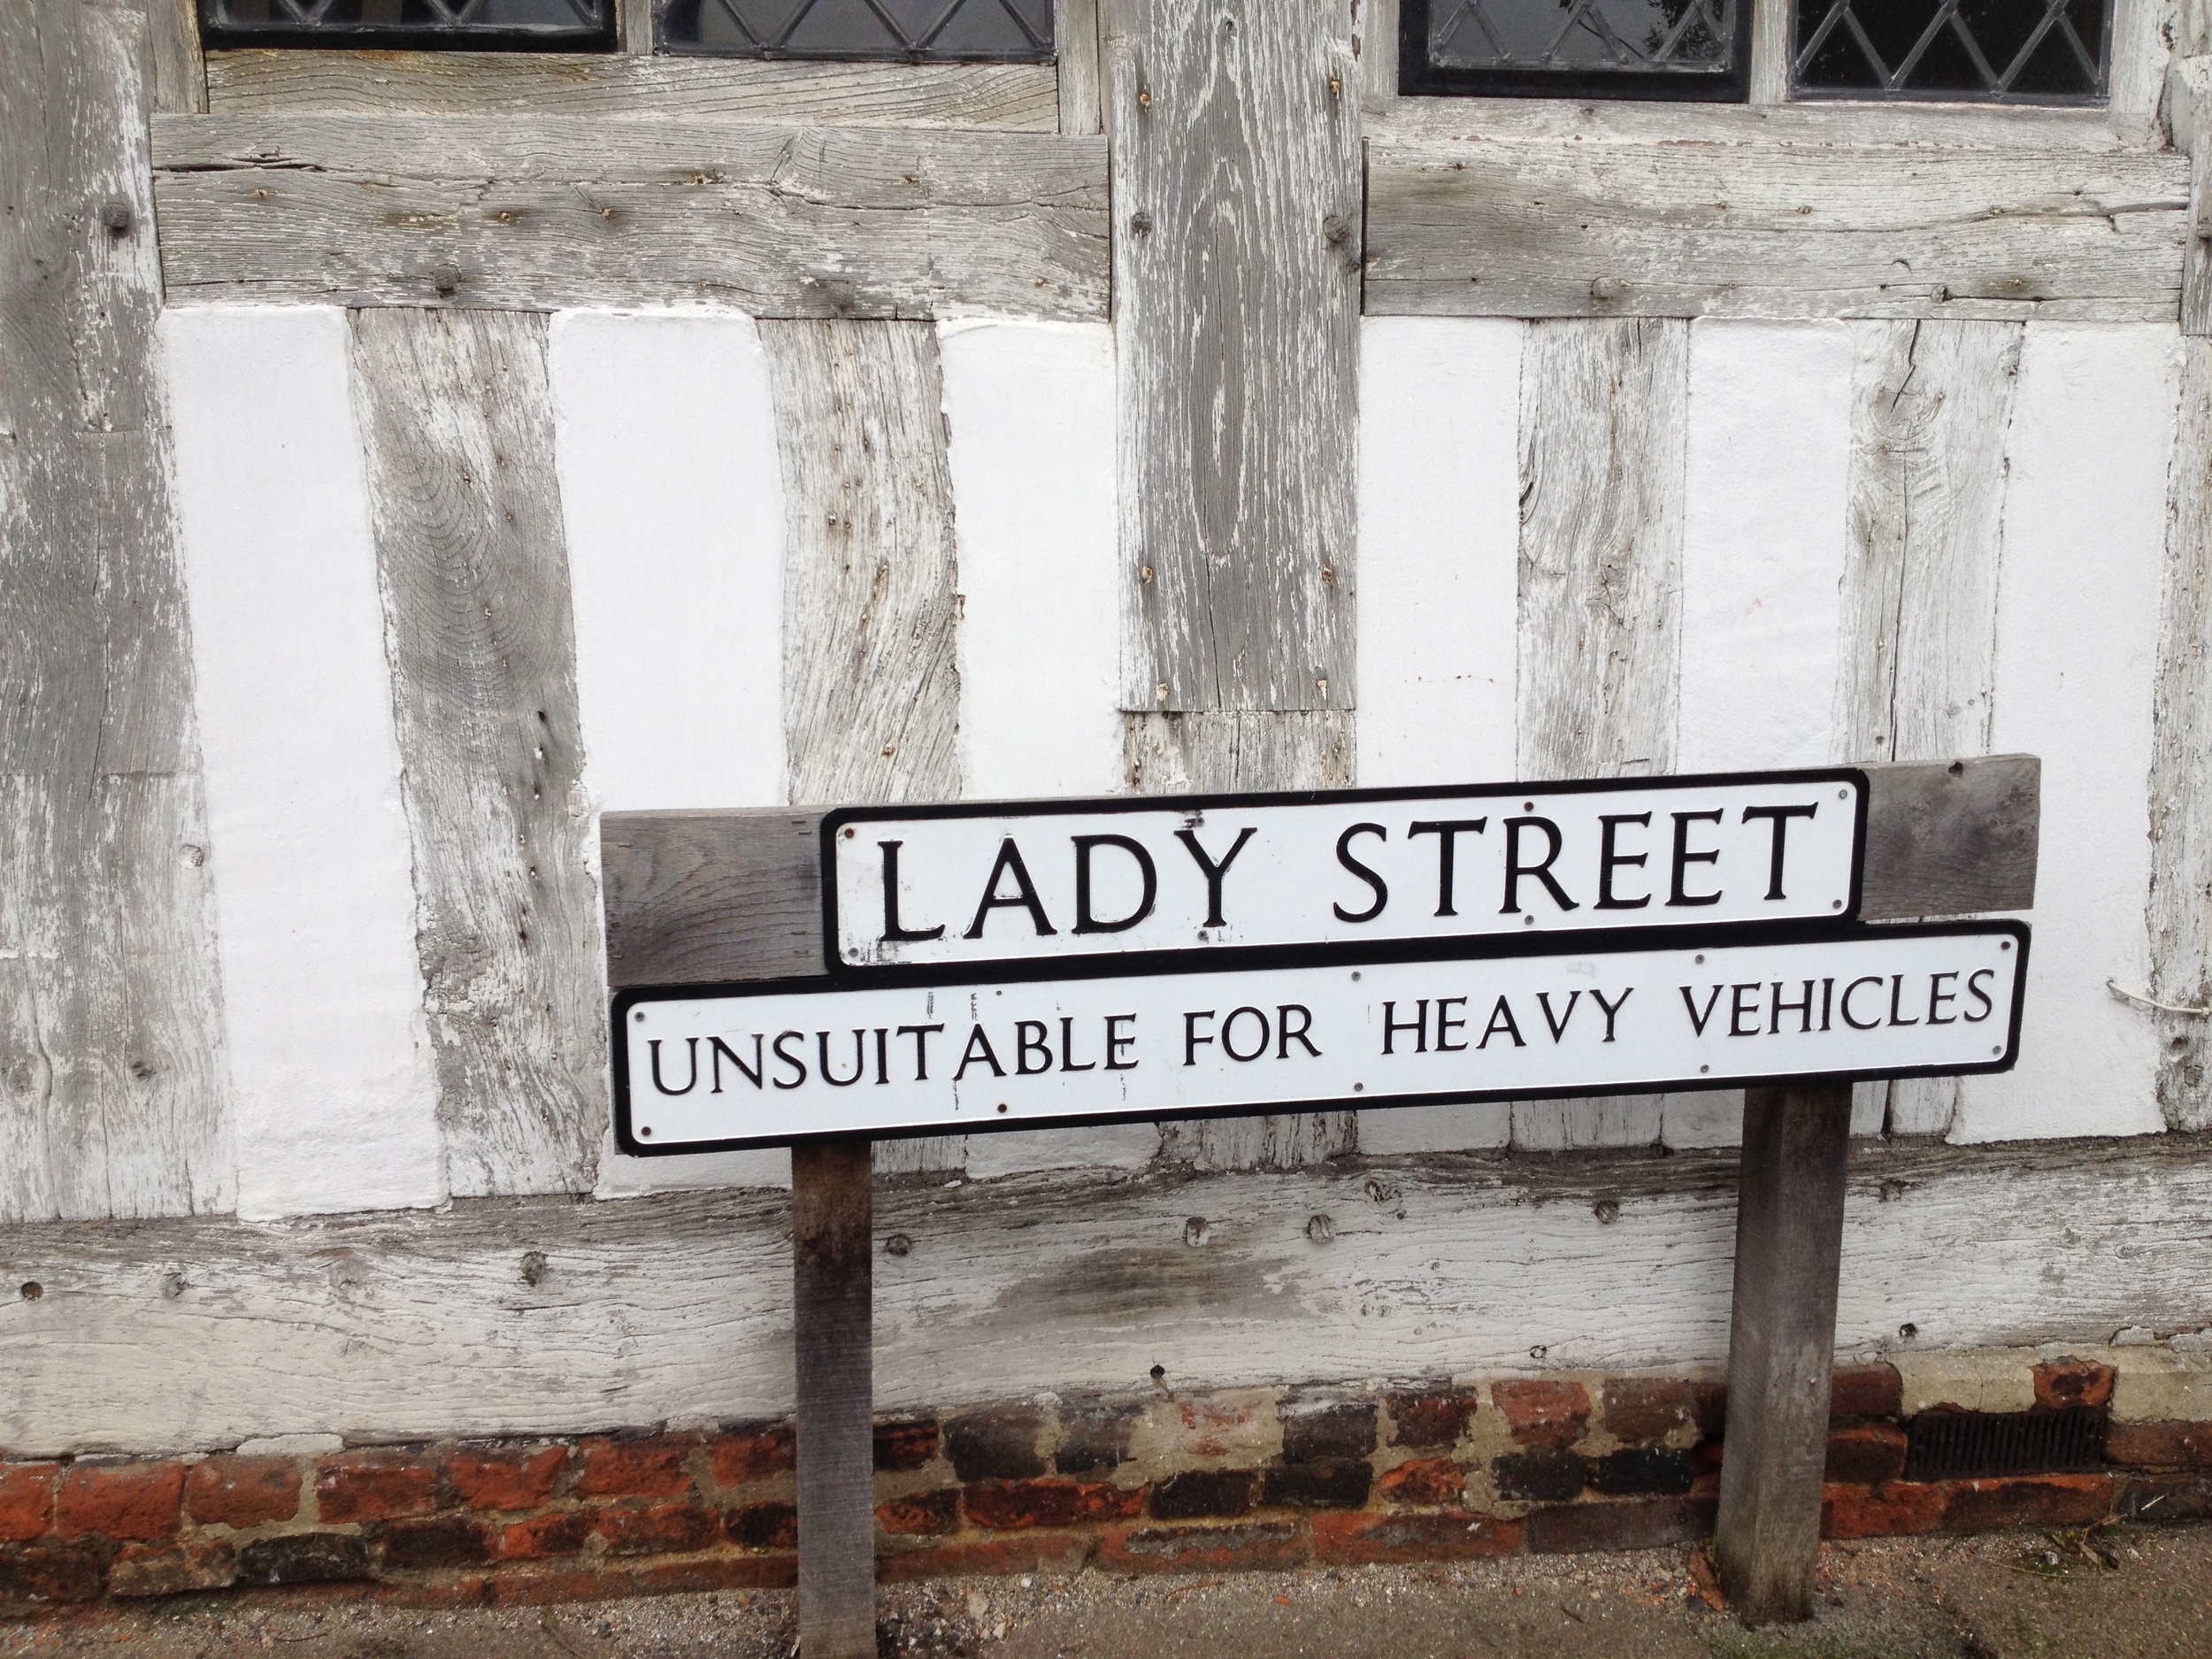 How could Lady Street be anything but unsuitable for heavy viehicles?